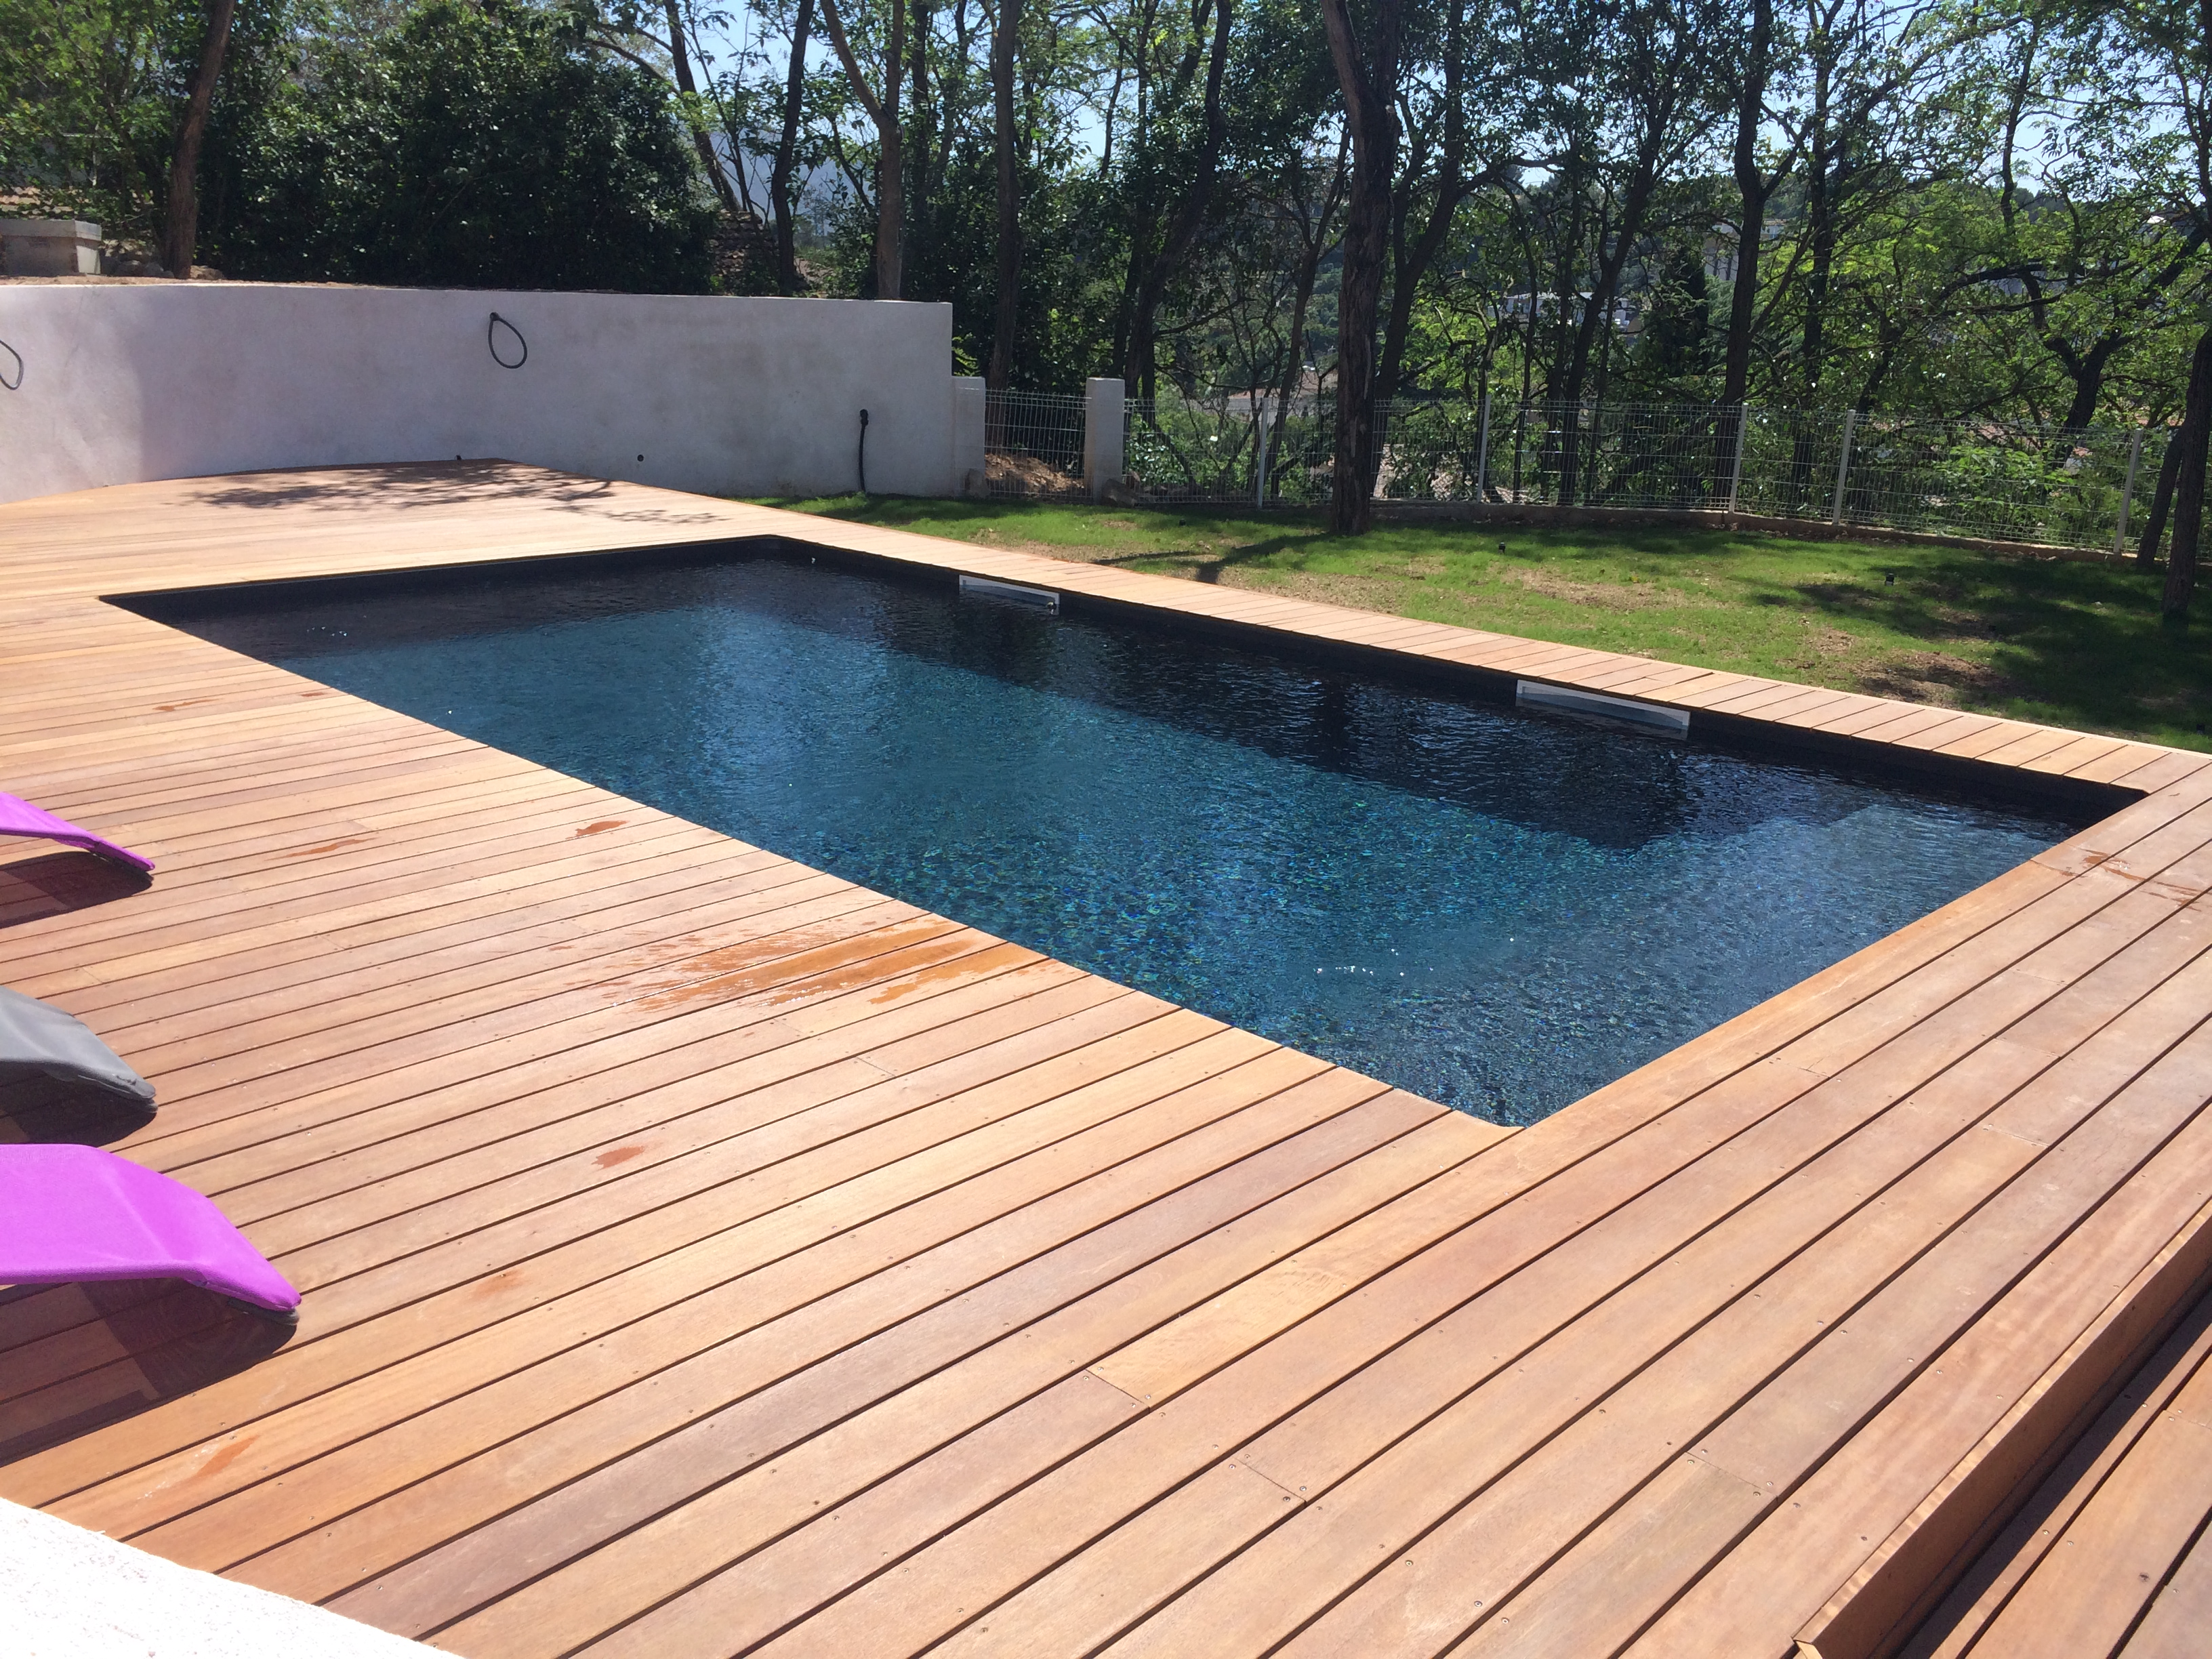 Constructeur de piscine en bois hy res - Photo des piscines ...